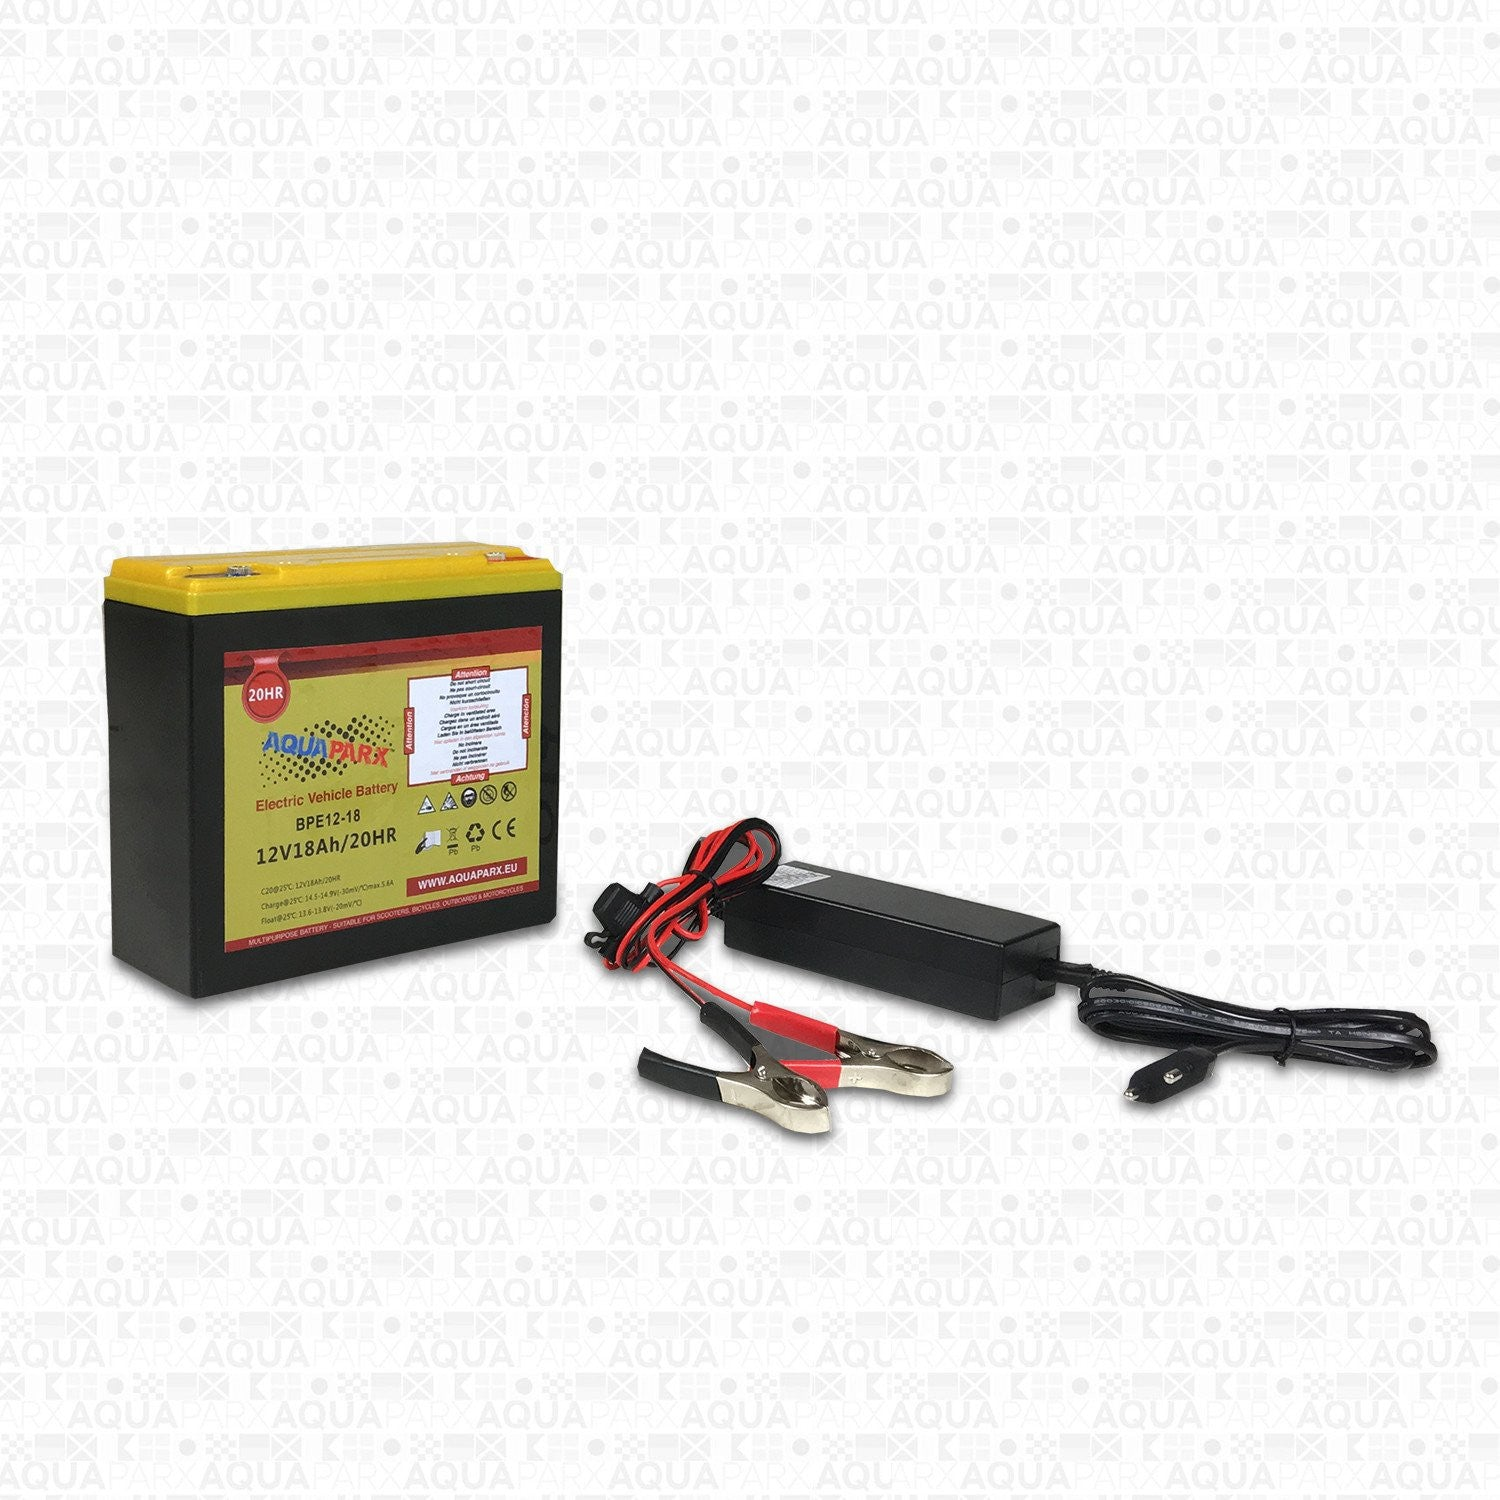 12V/18AH Lead/Acid Battery for electric outboard motor